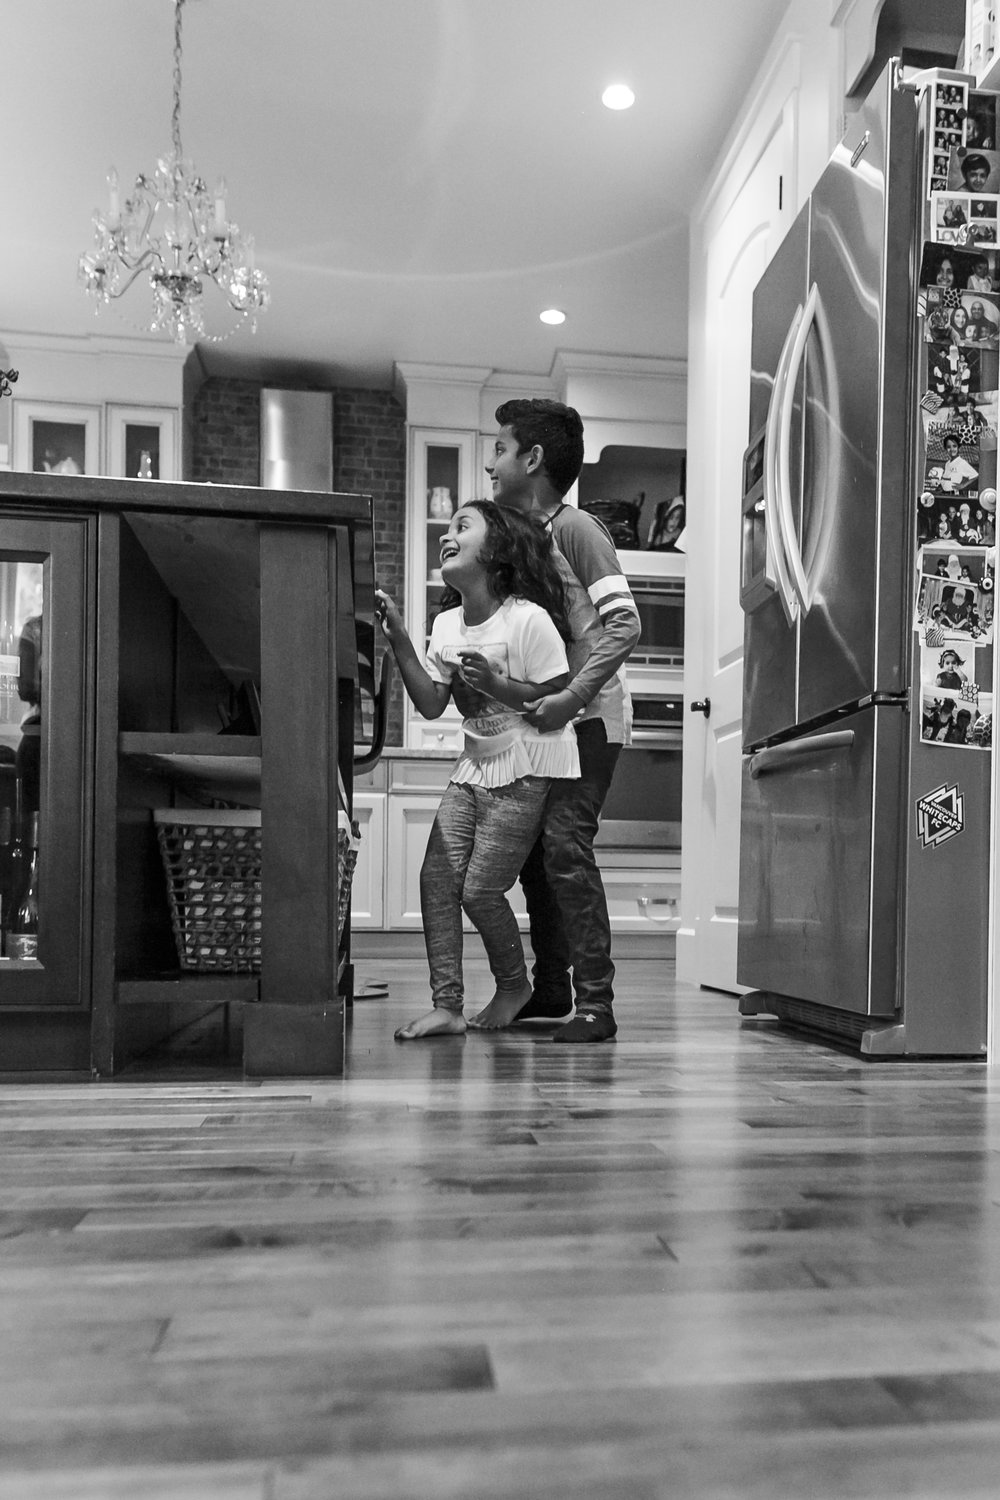 Surrey Family photographer. Vancouver family photographer, klutch Photography, documentary photography, candid photography, siblings fighting